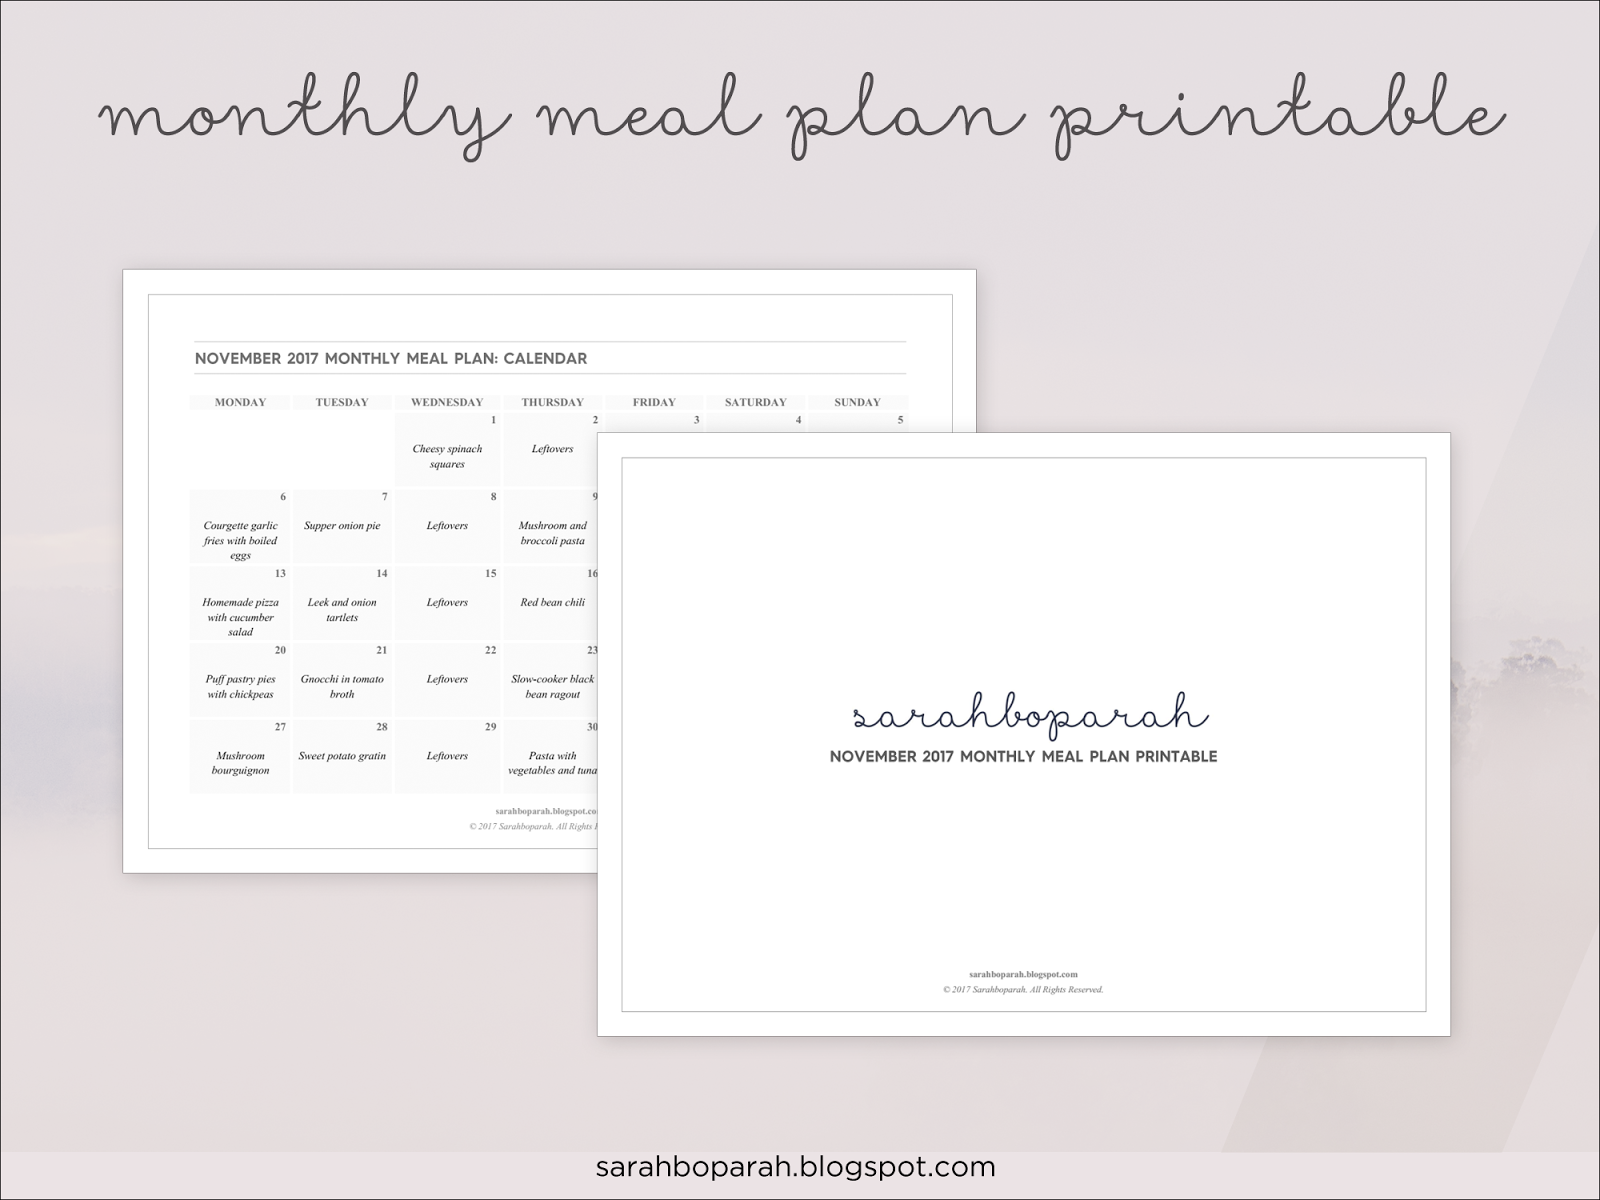 November 2017 Monthly Meal Plan Printable Calendar from Sarahboparah.